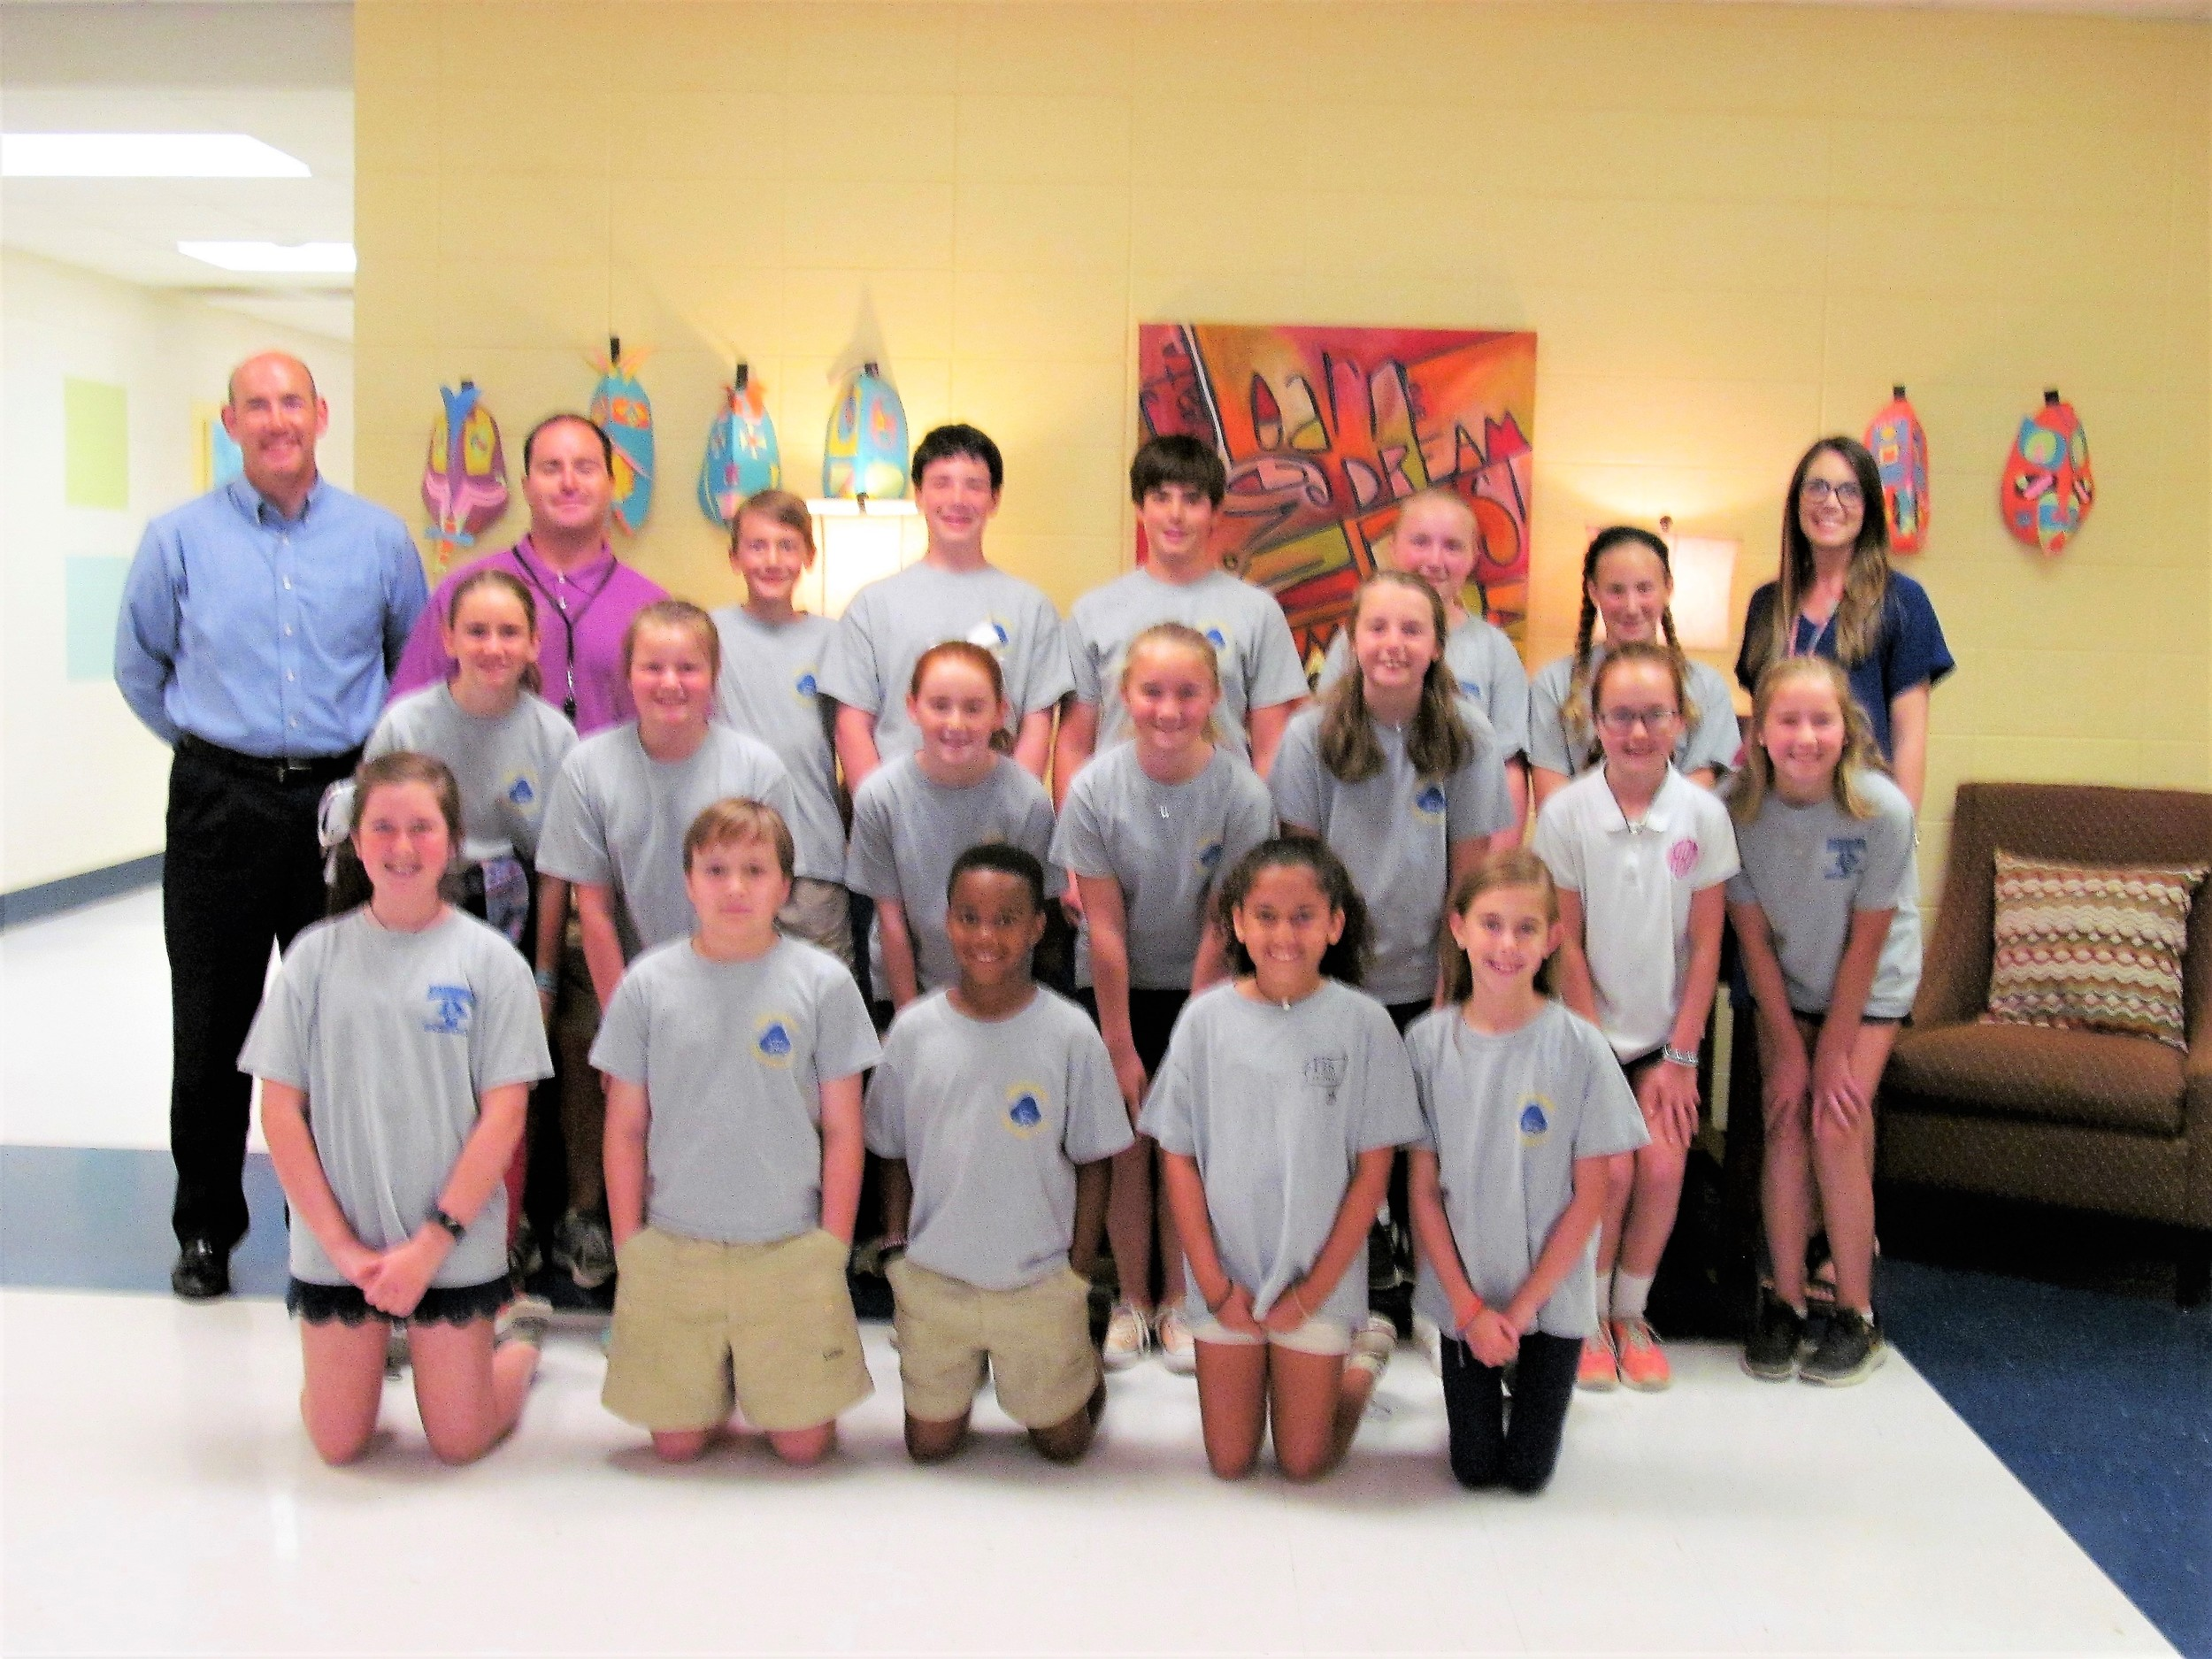 Baldwin Bone & Joint recently awarded Fairhope Intermediate $300 for their school's PE program for collecting the most shoes in the 2018 Many More Miles Campaign. Student representatives from each class spearheaded the campaign and collected 600 pairs of shoes to benefit the homeless ministries of Wings of Life, Discovery Ministries, and the Salvation Army Running Forward program. Pictured with the student representatives are Greg Shoemaker, Practice Administrator for Baldwin Bone & Joint, Coach Ryan Hymel, and teacher, Emily Steigerwald. Rockwell Elementary took second place and Mary B. Austin Elementary third.